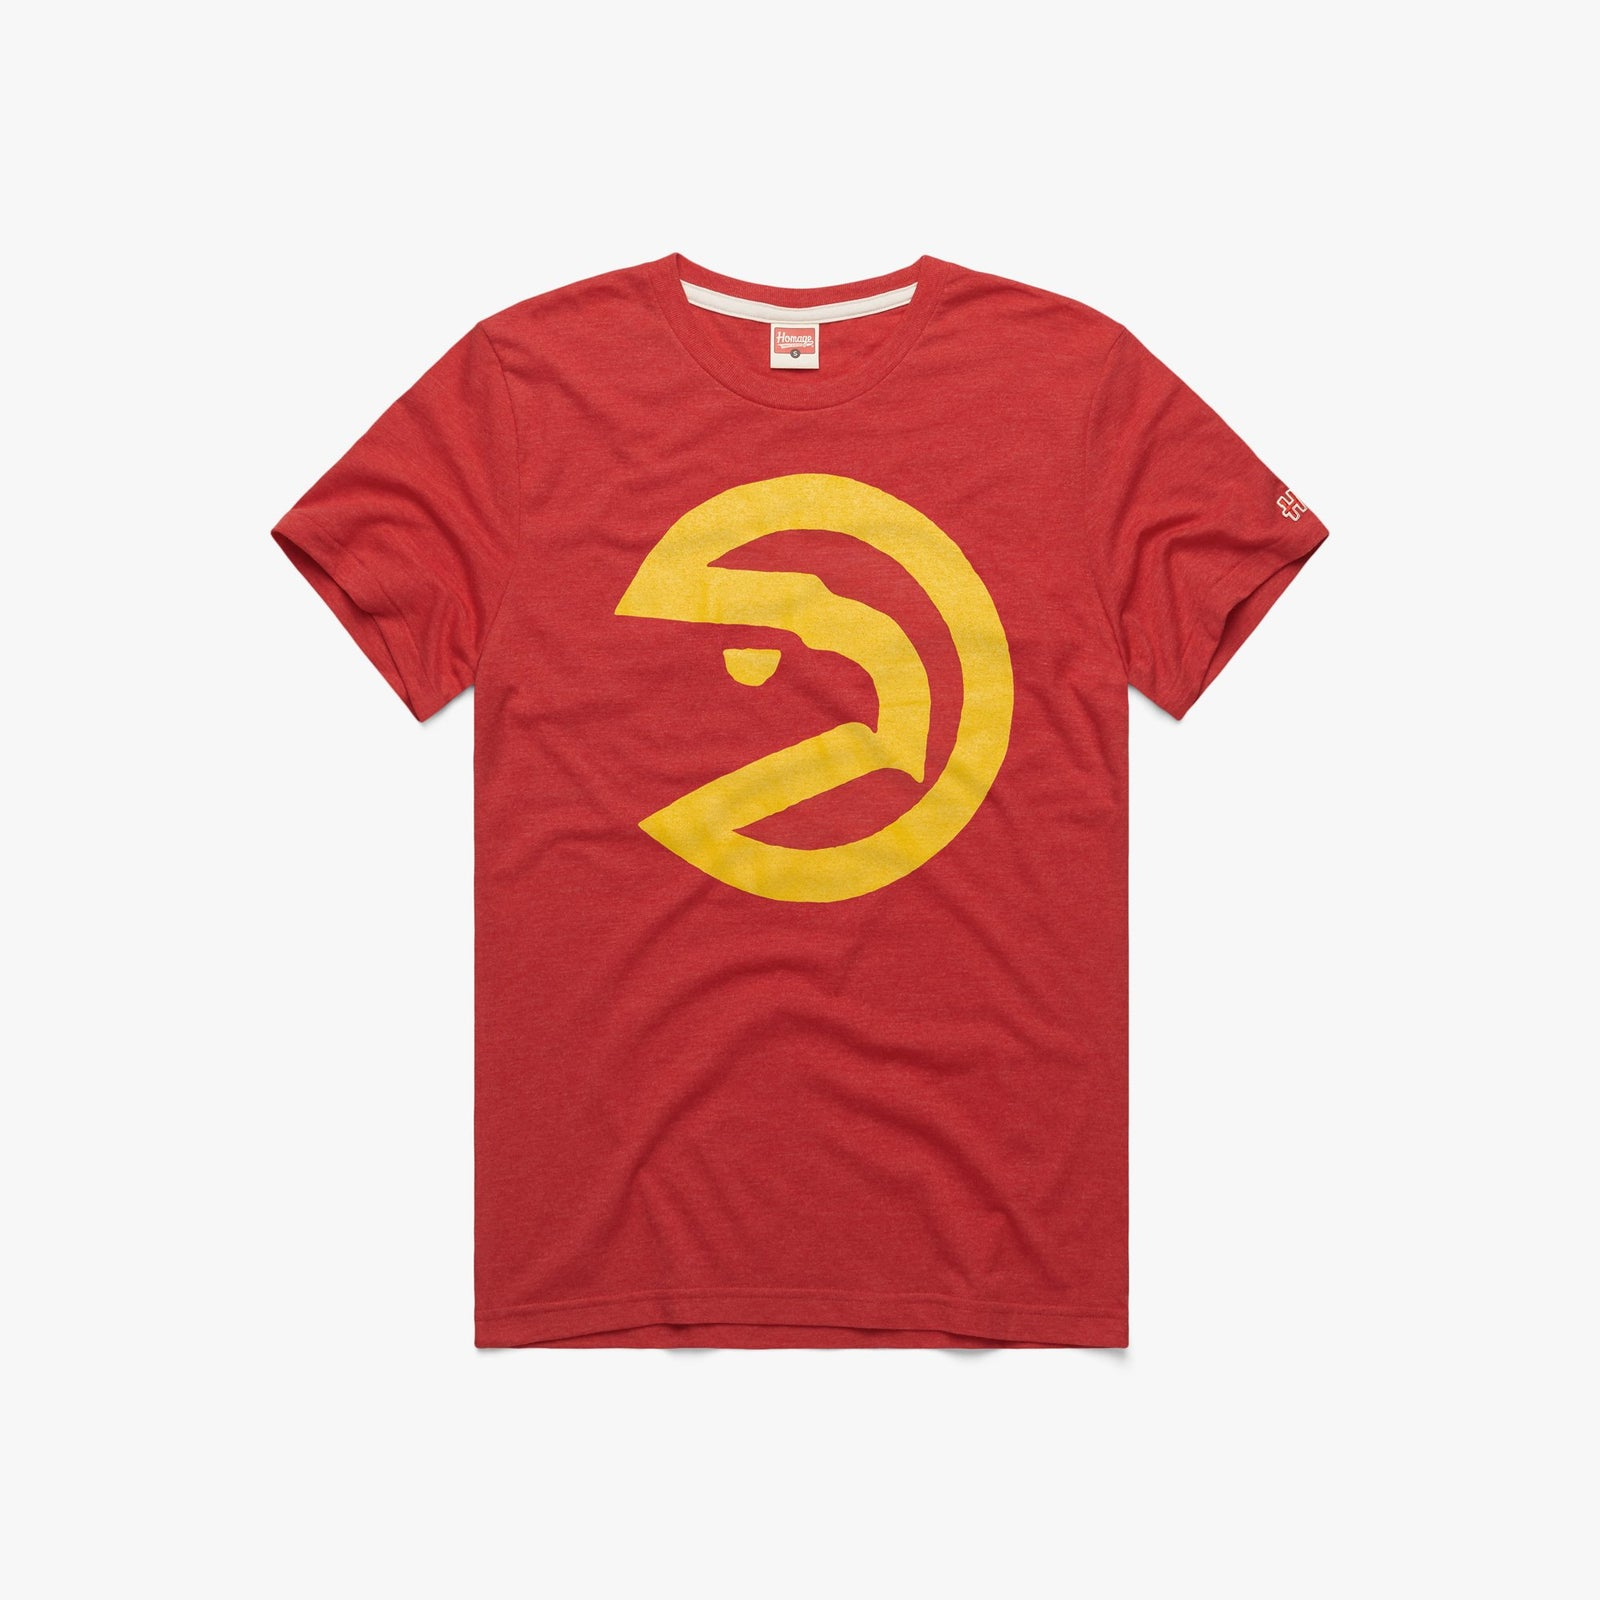 Atlanta Hawks Alternate '72